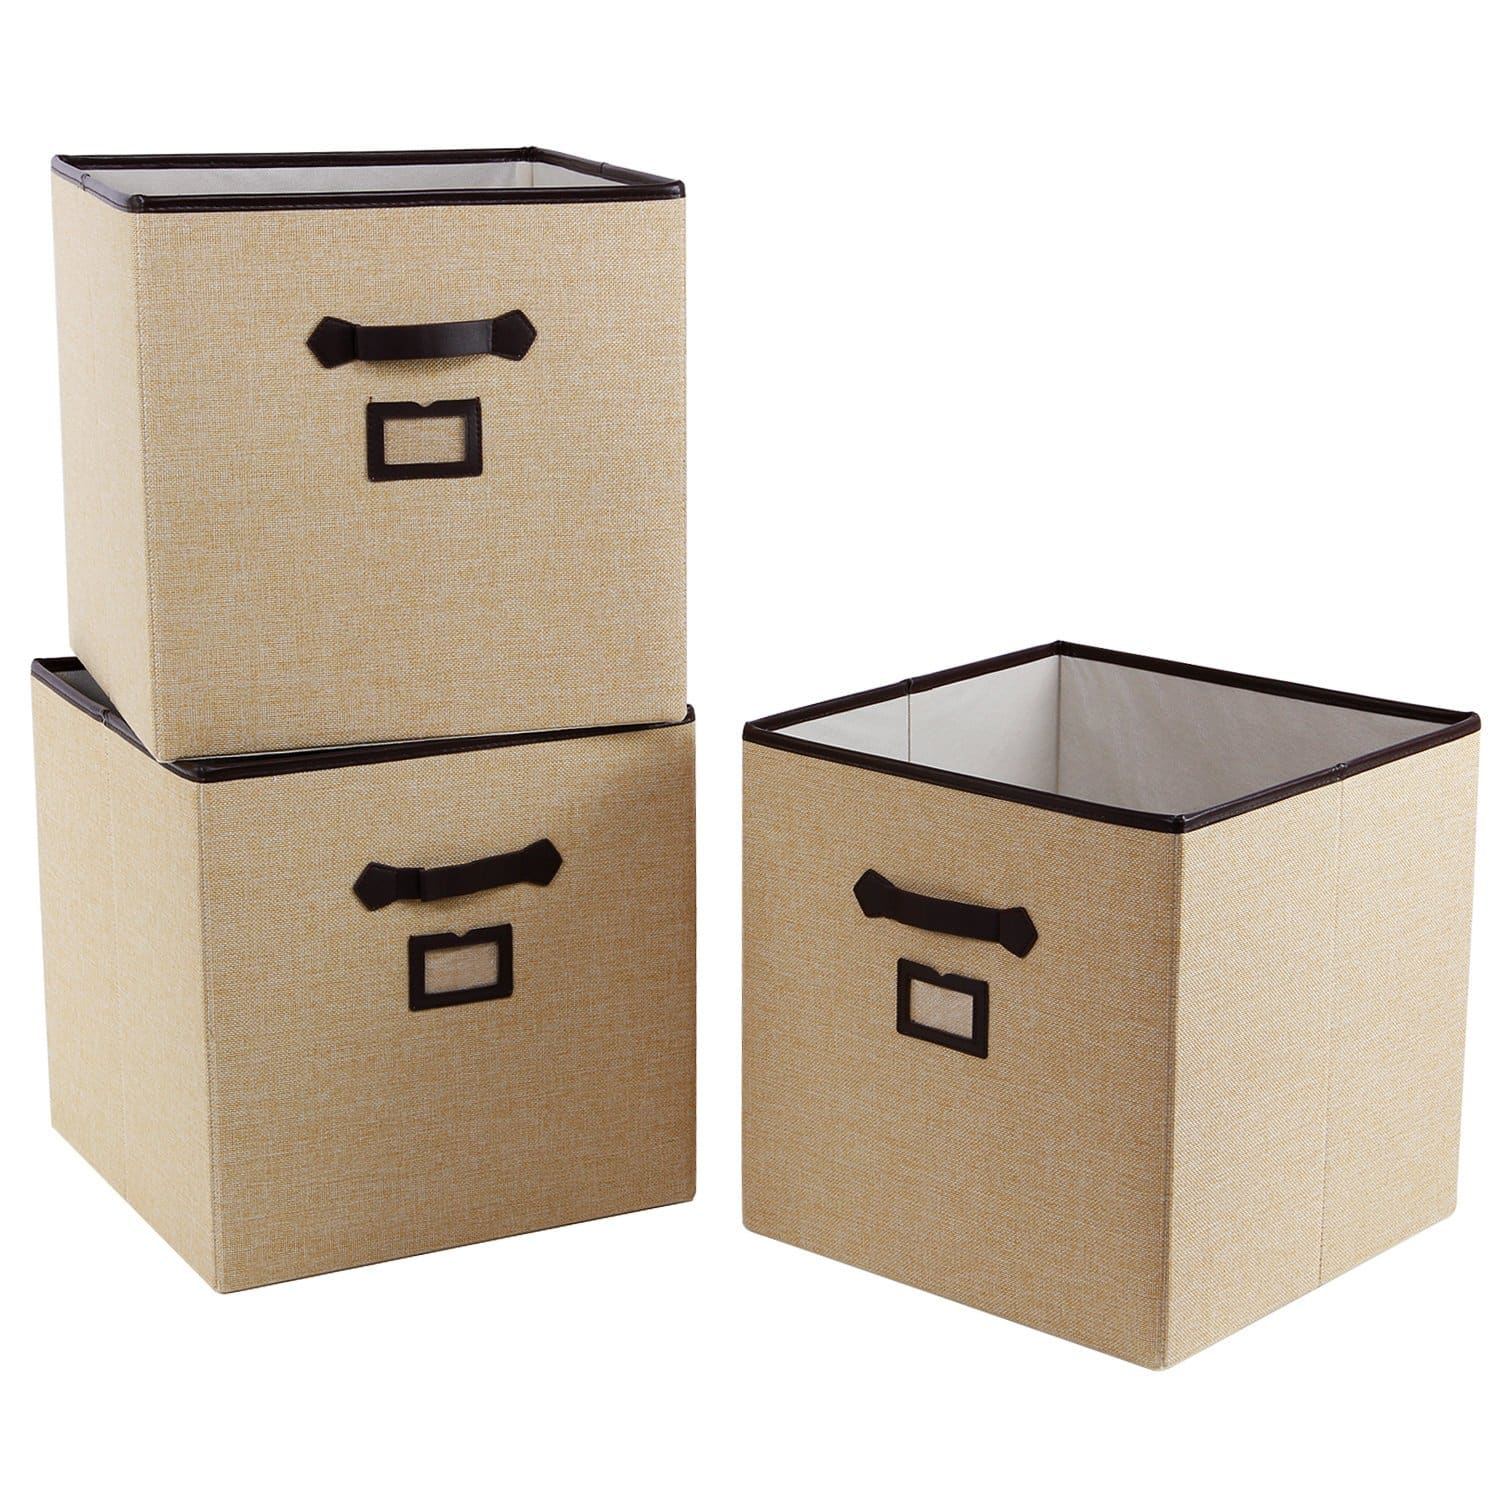 3-Pack Foldable Cloth Storage Cubes with Labels - Amazon's Choice! (Free Prime Shipping) $19.7